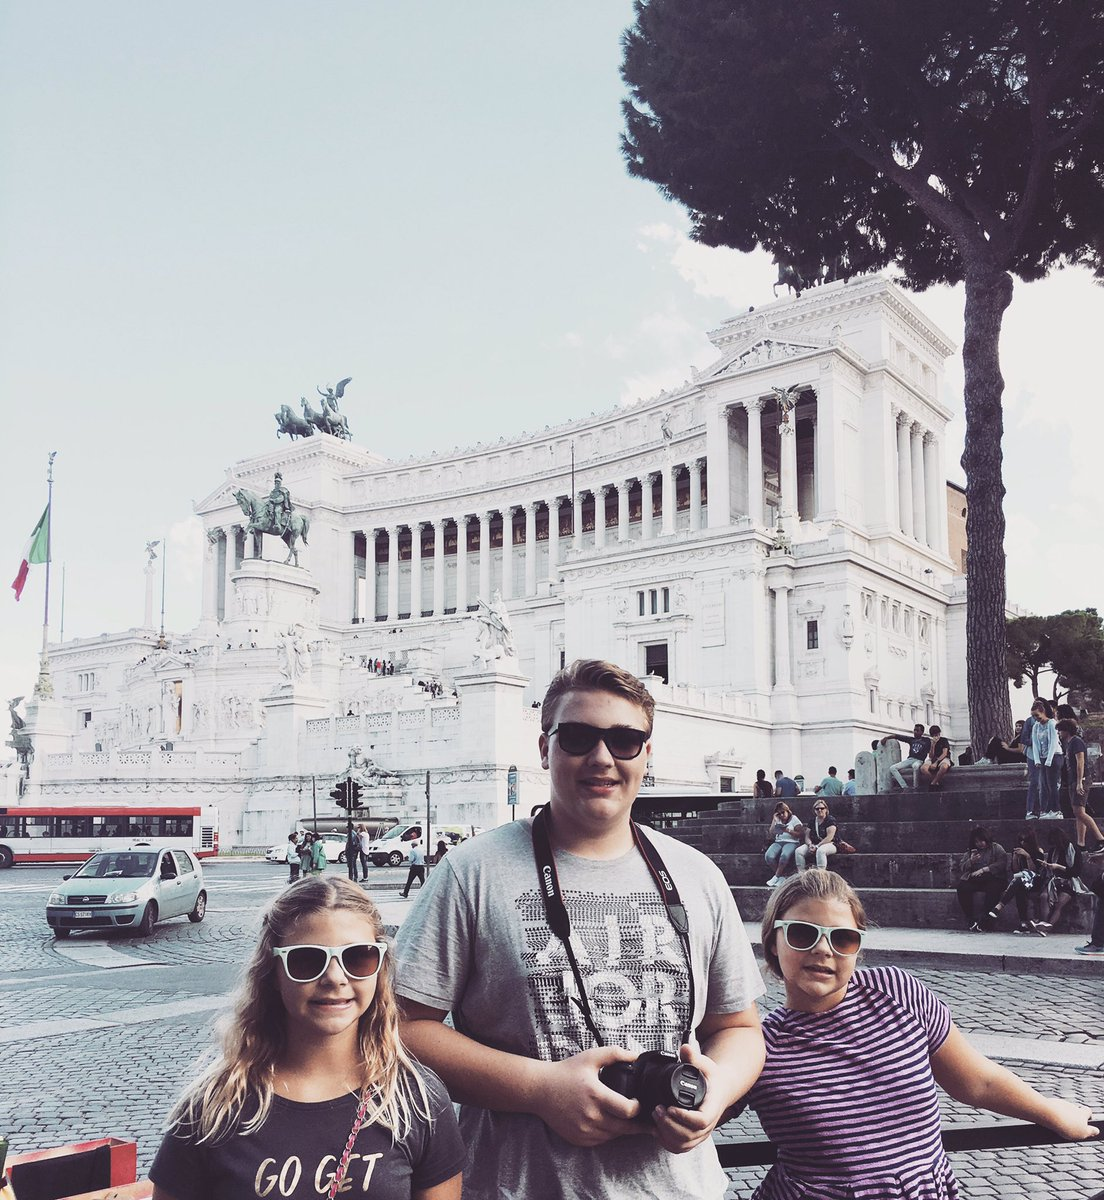 Happy #Valentines day! My 4 fav things... my 2 babies and #italy #singlemomglobetrotter @smglobetrotter<br>http://pic.twitter.com/JObDNlaKvz